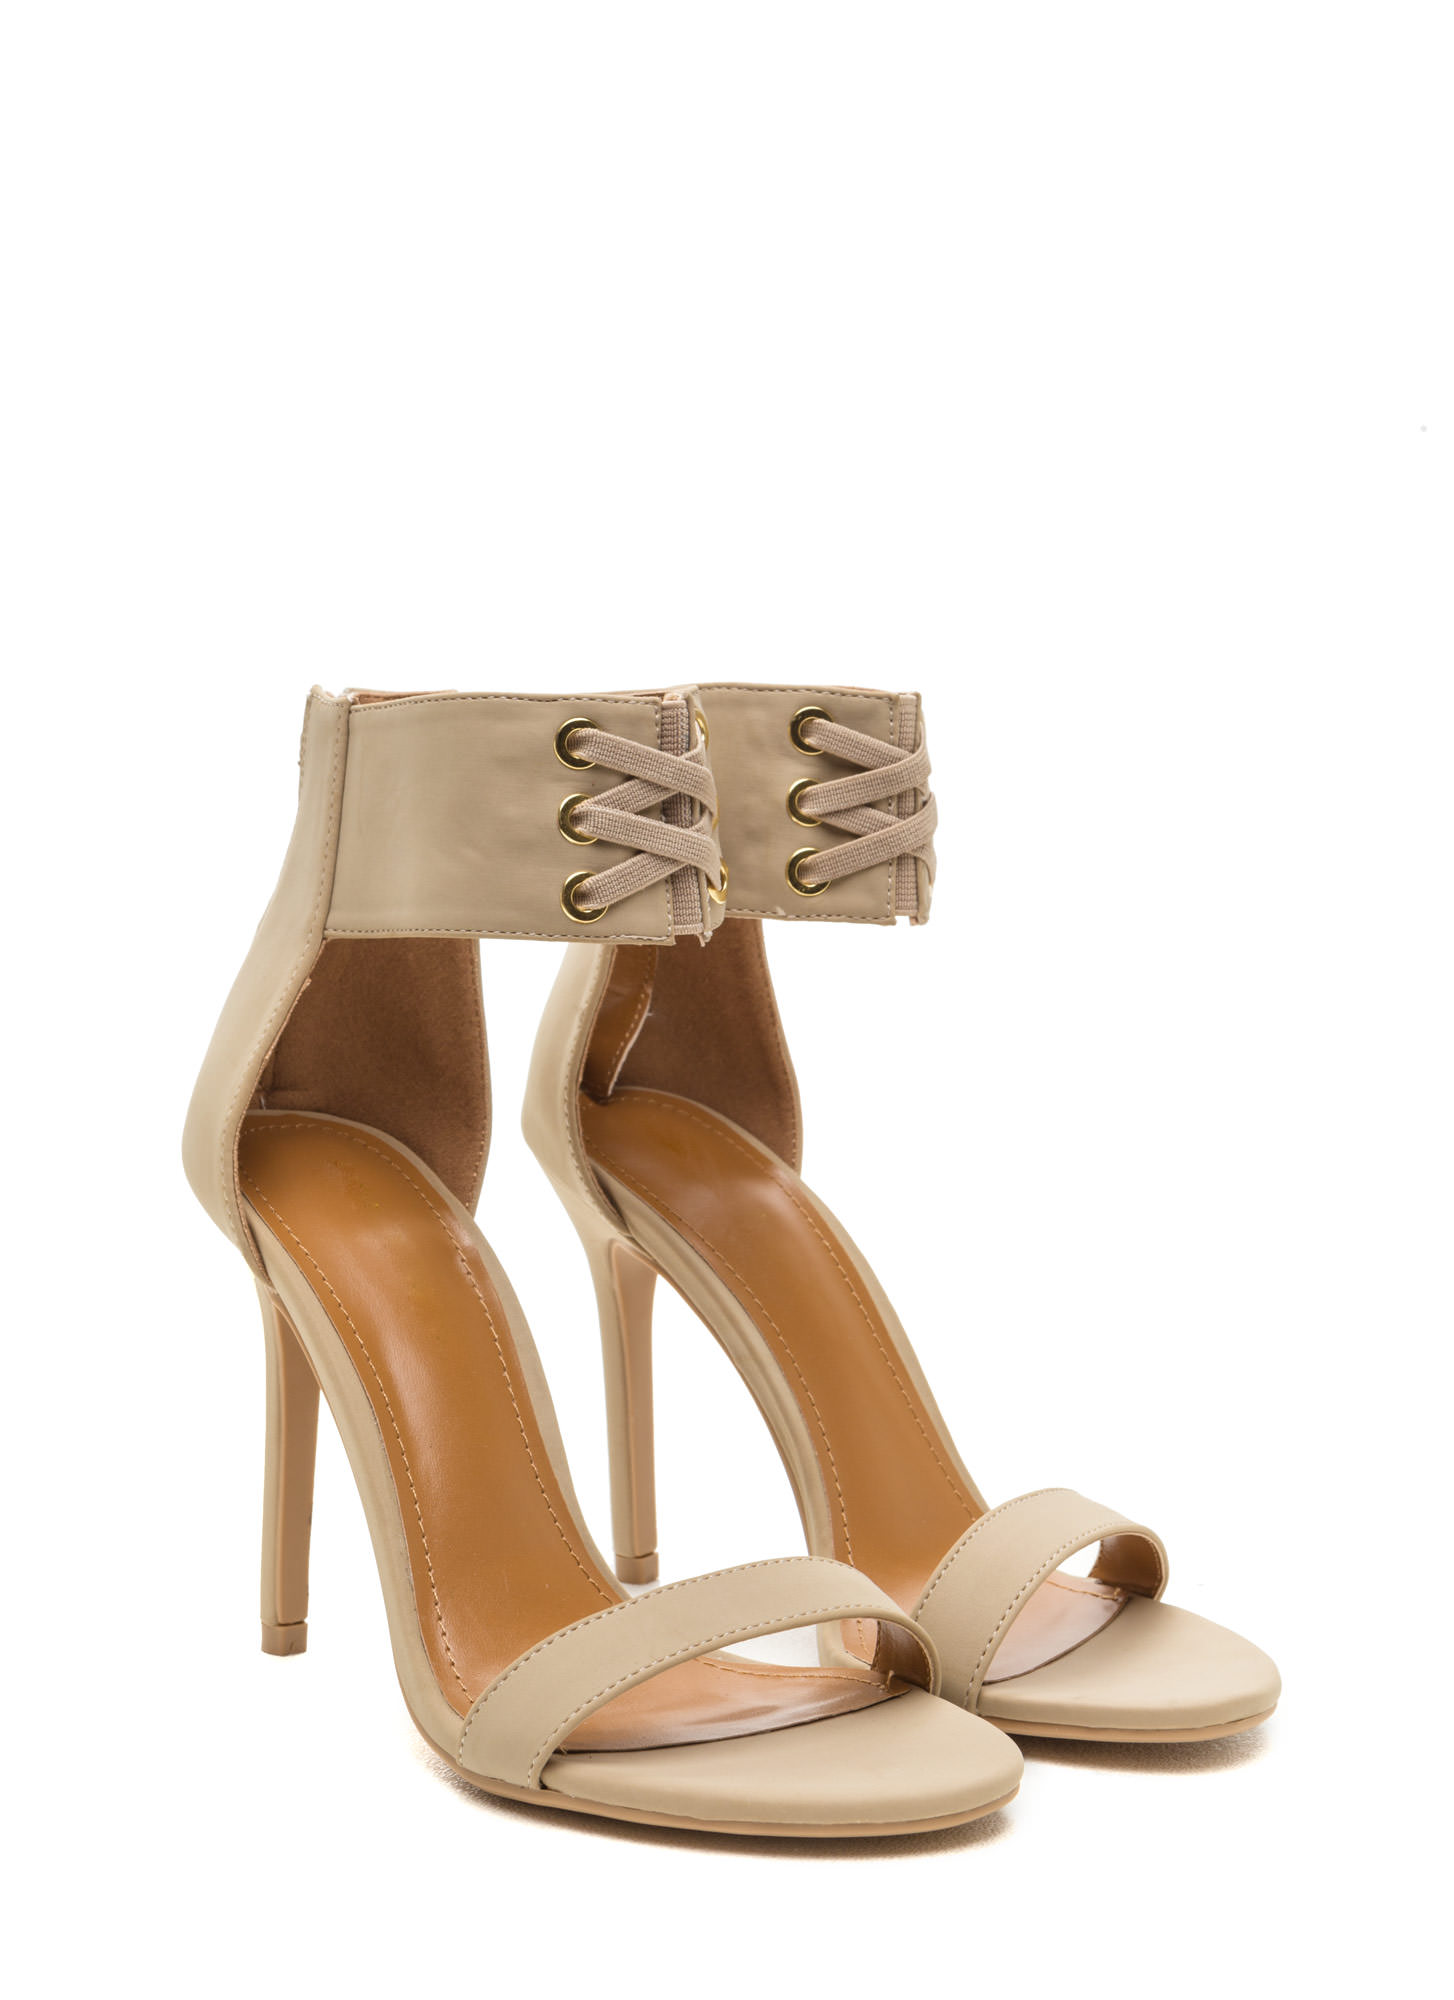 X Marks The Hot Single Strap Heels NUDE